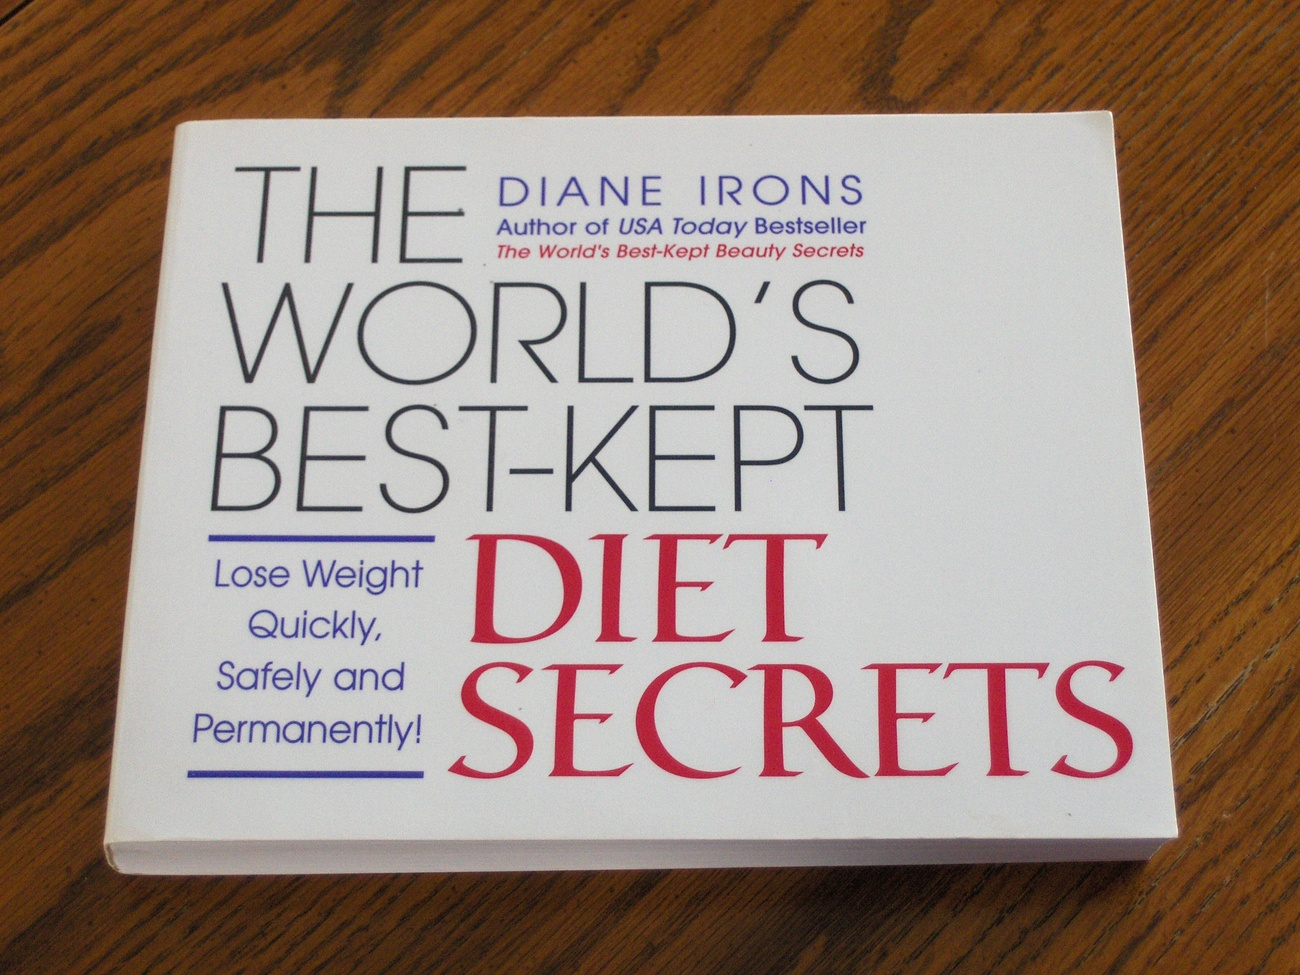 Primary image for The Worlds Best Kept Diet Secrets  Diane Irons